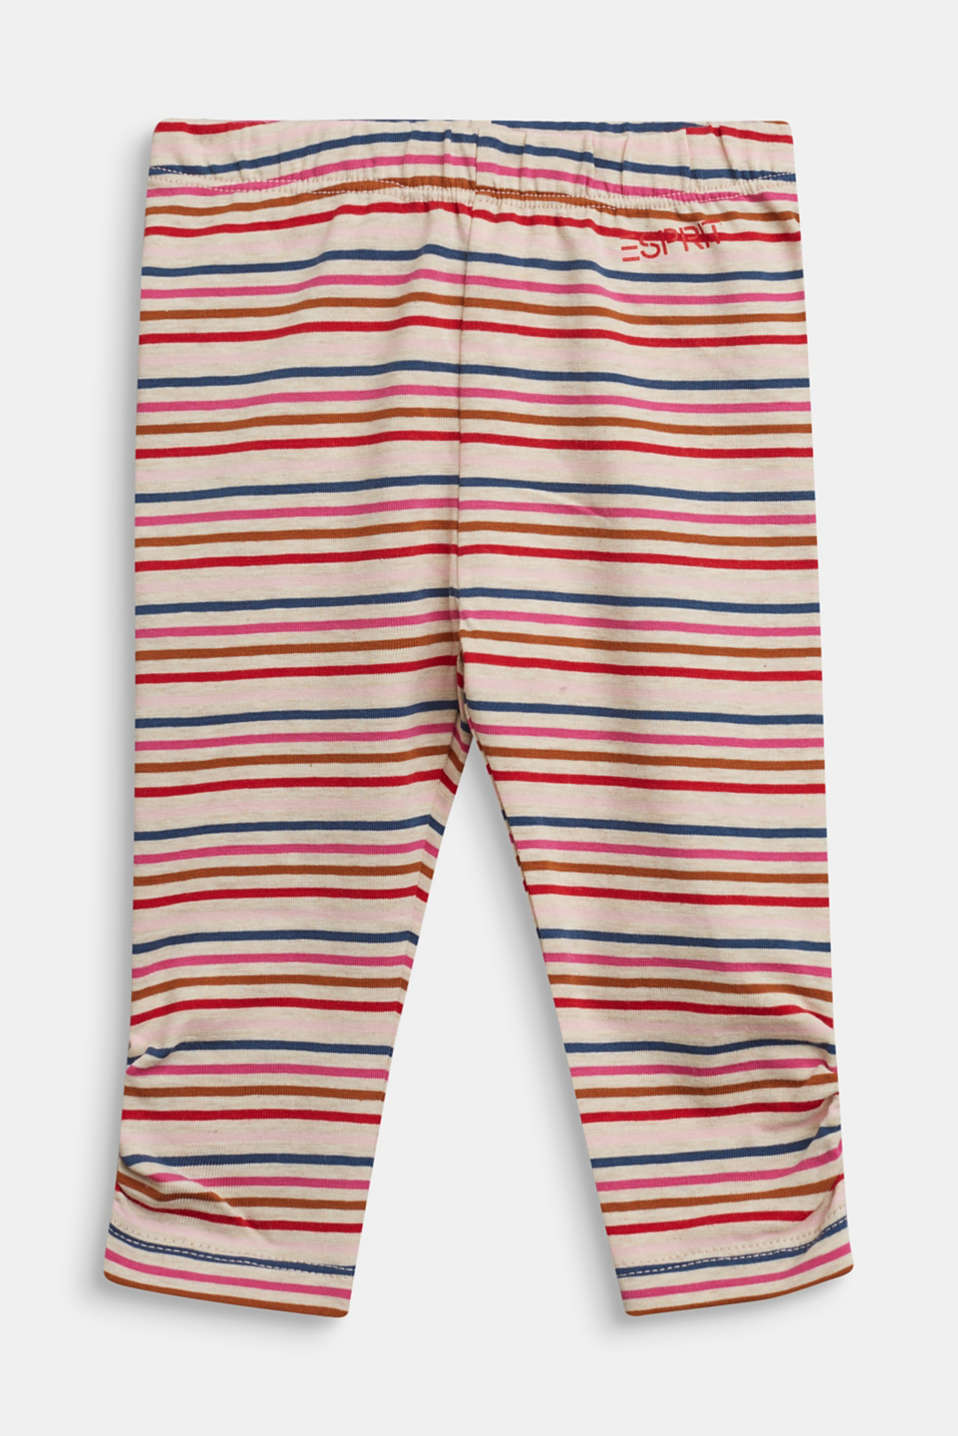 Esprit - Striped leggings, organic cotton with stretch